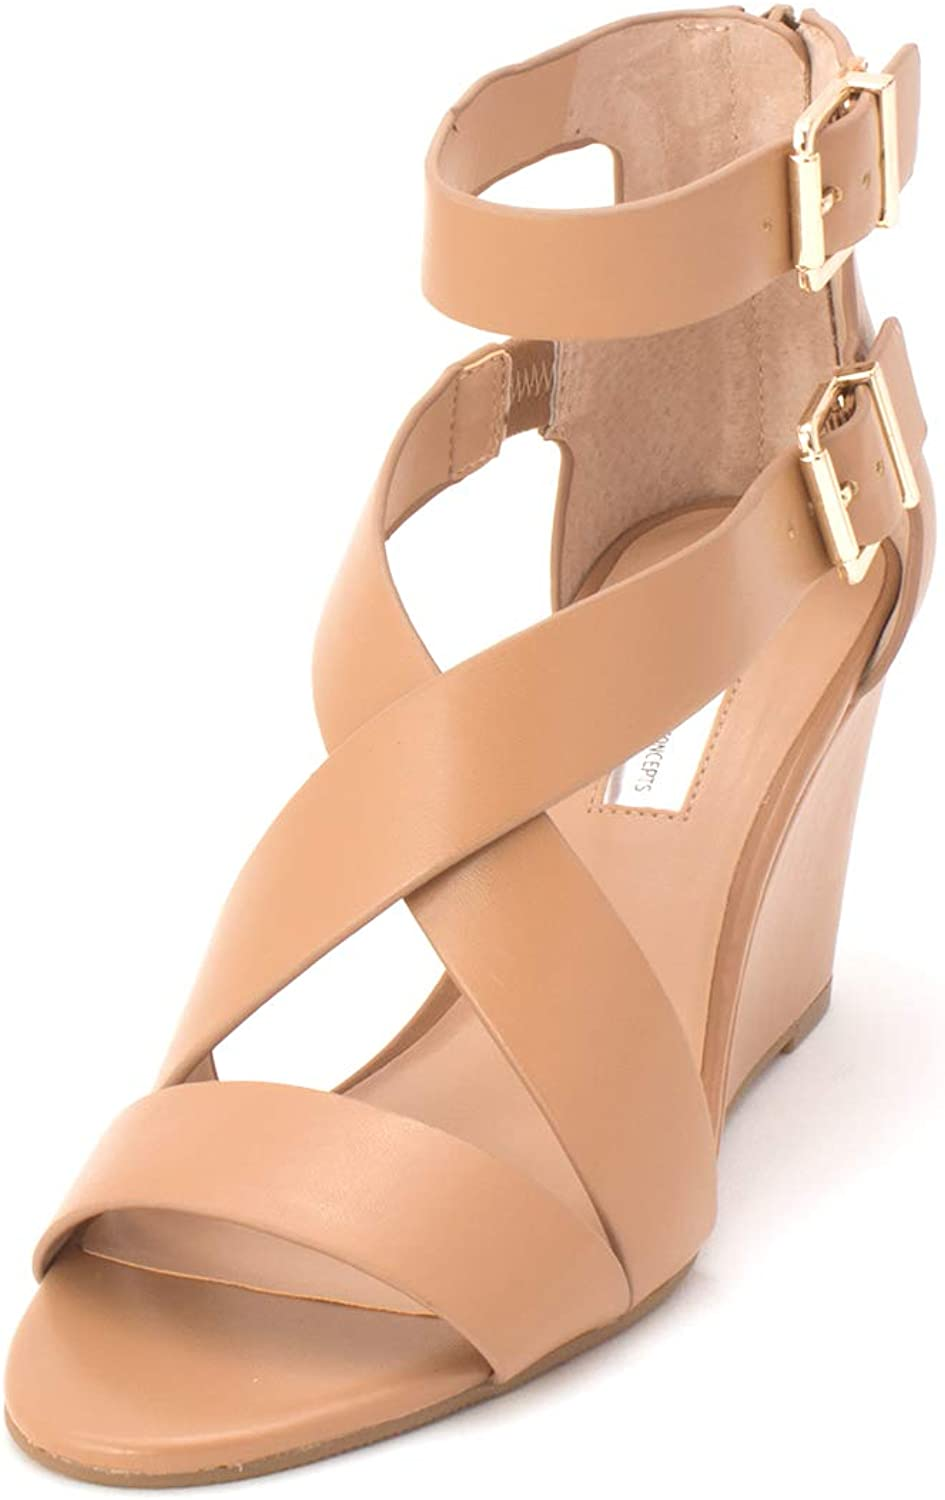 Inc Womens Rominia Faux Leather Wedge Sandals